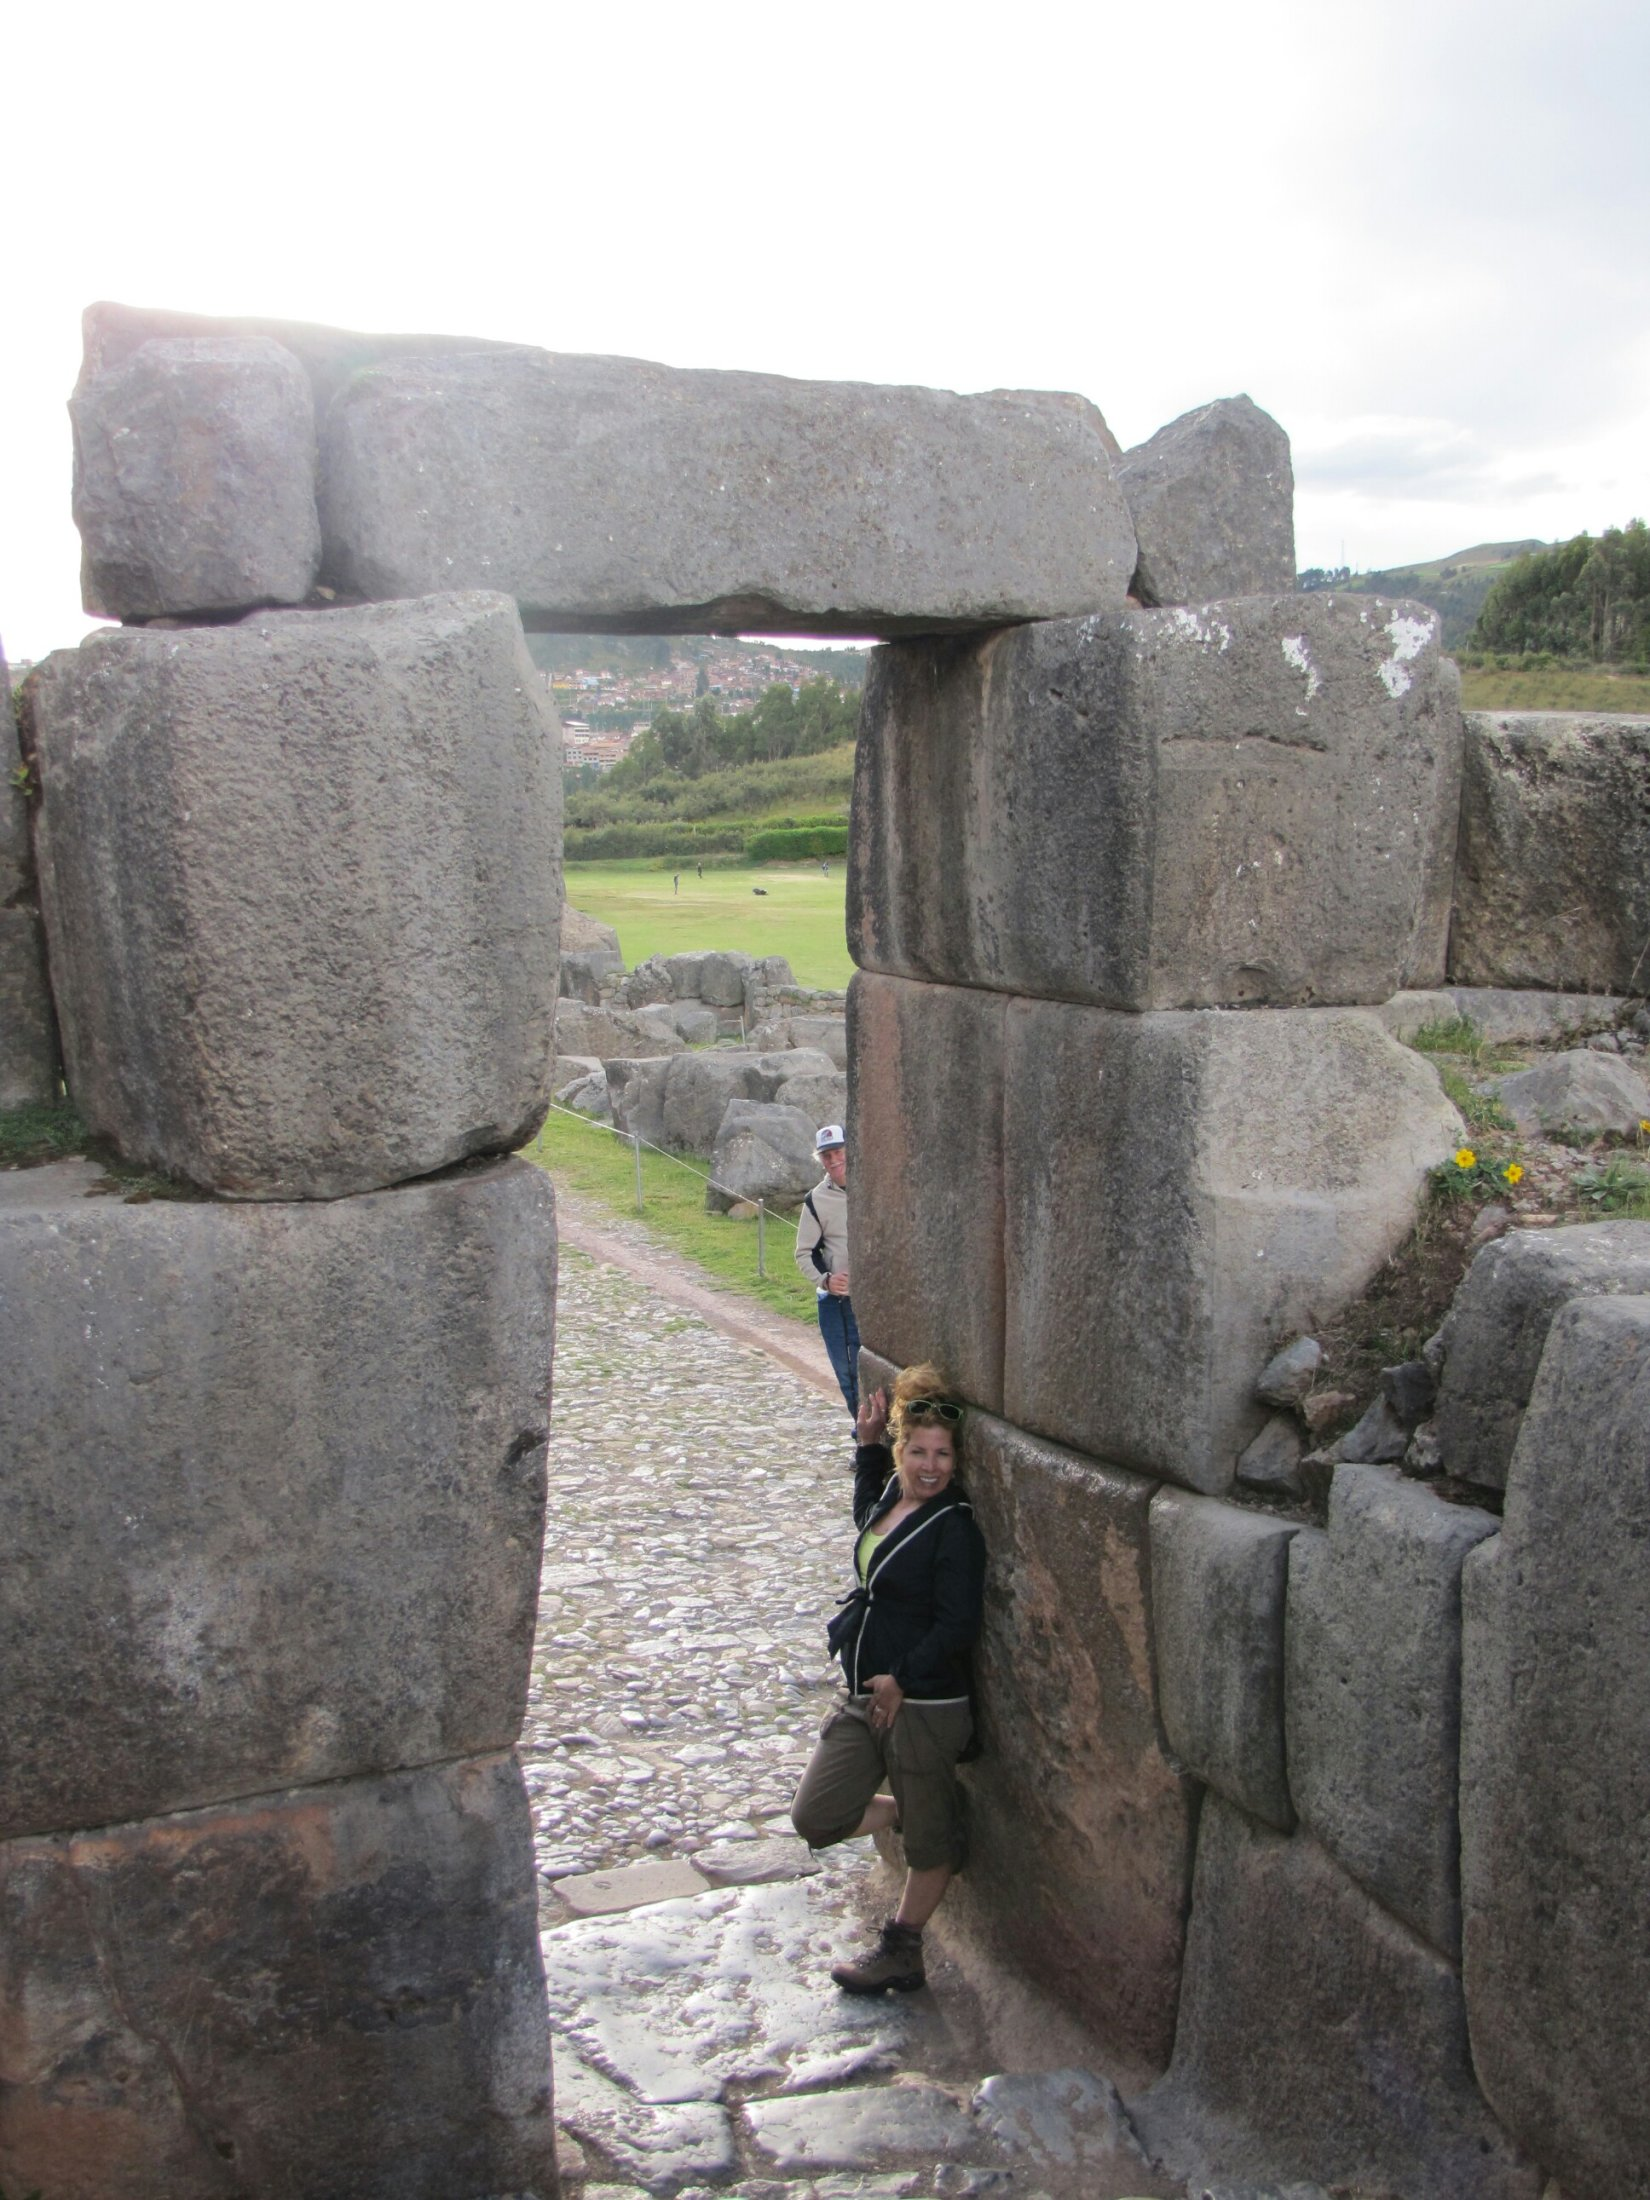 Photobombing at Saqsaywaman ruins